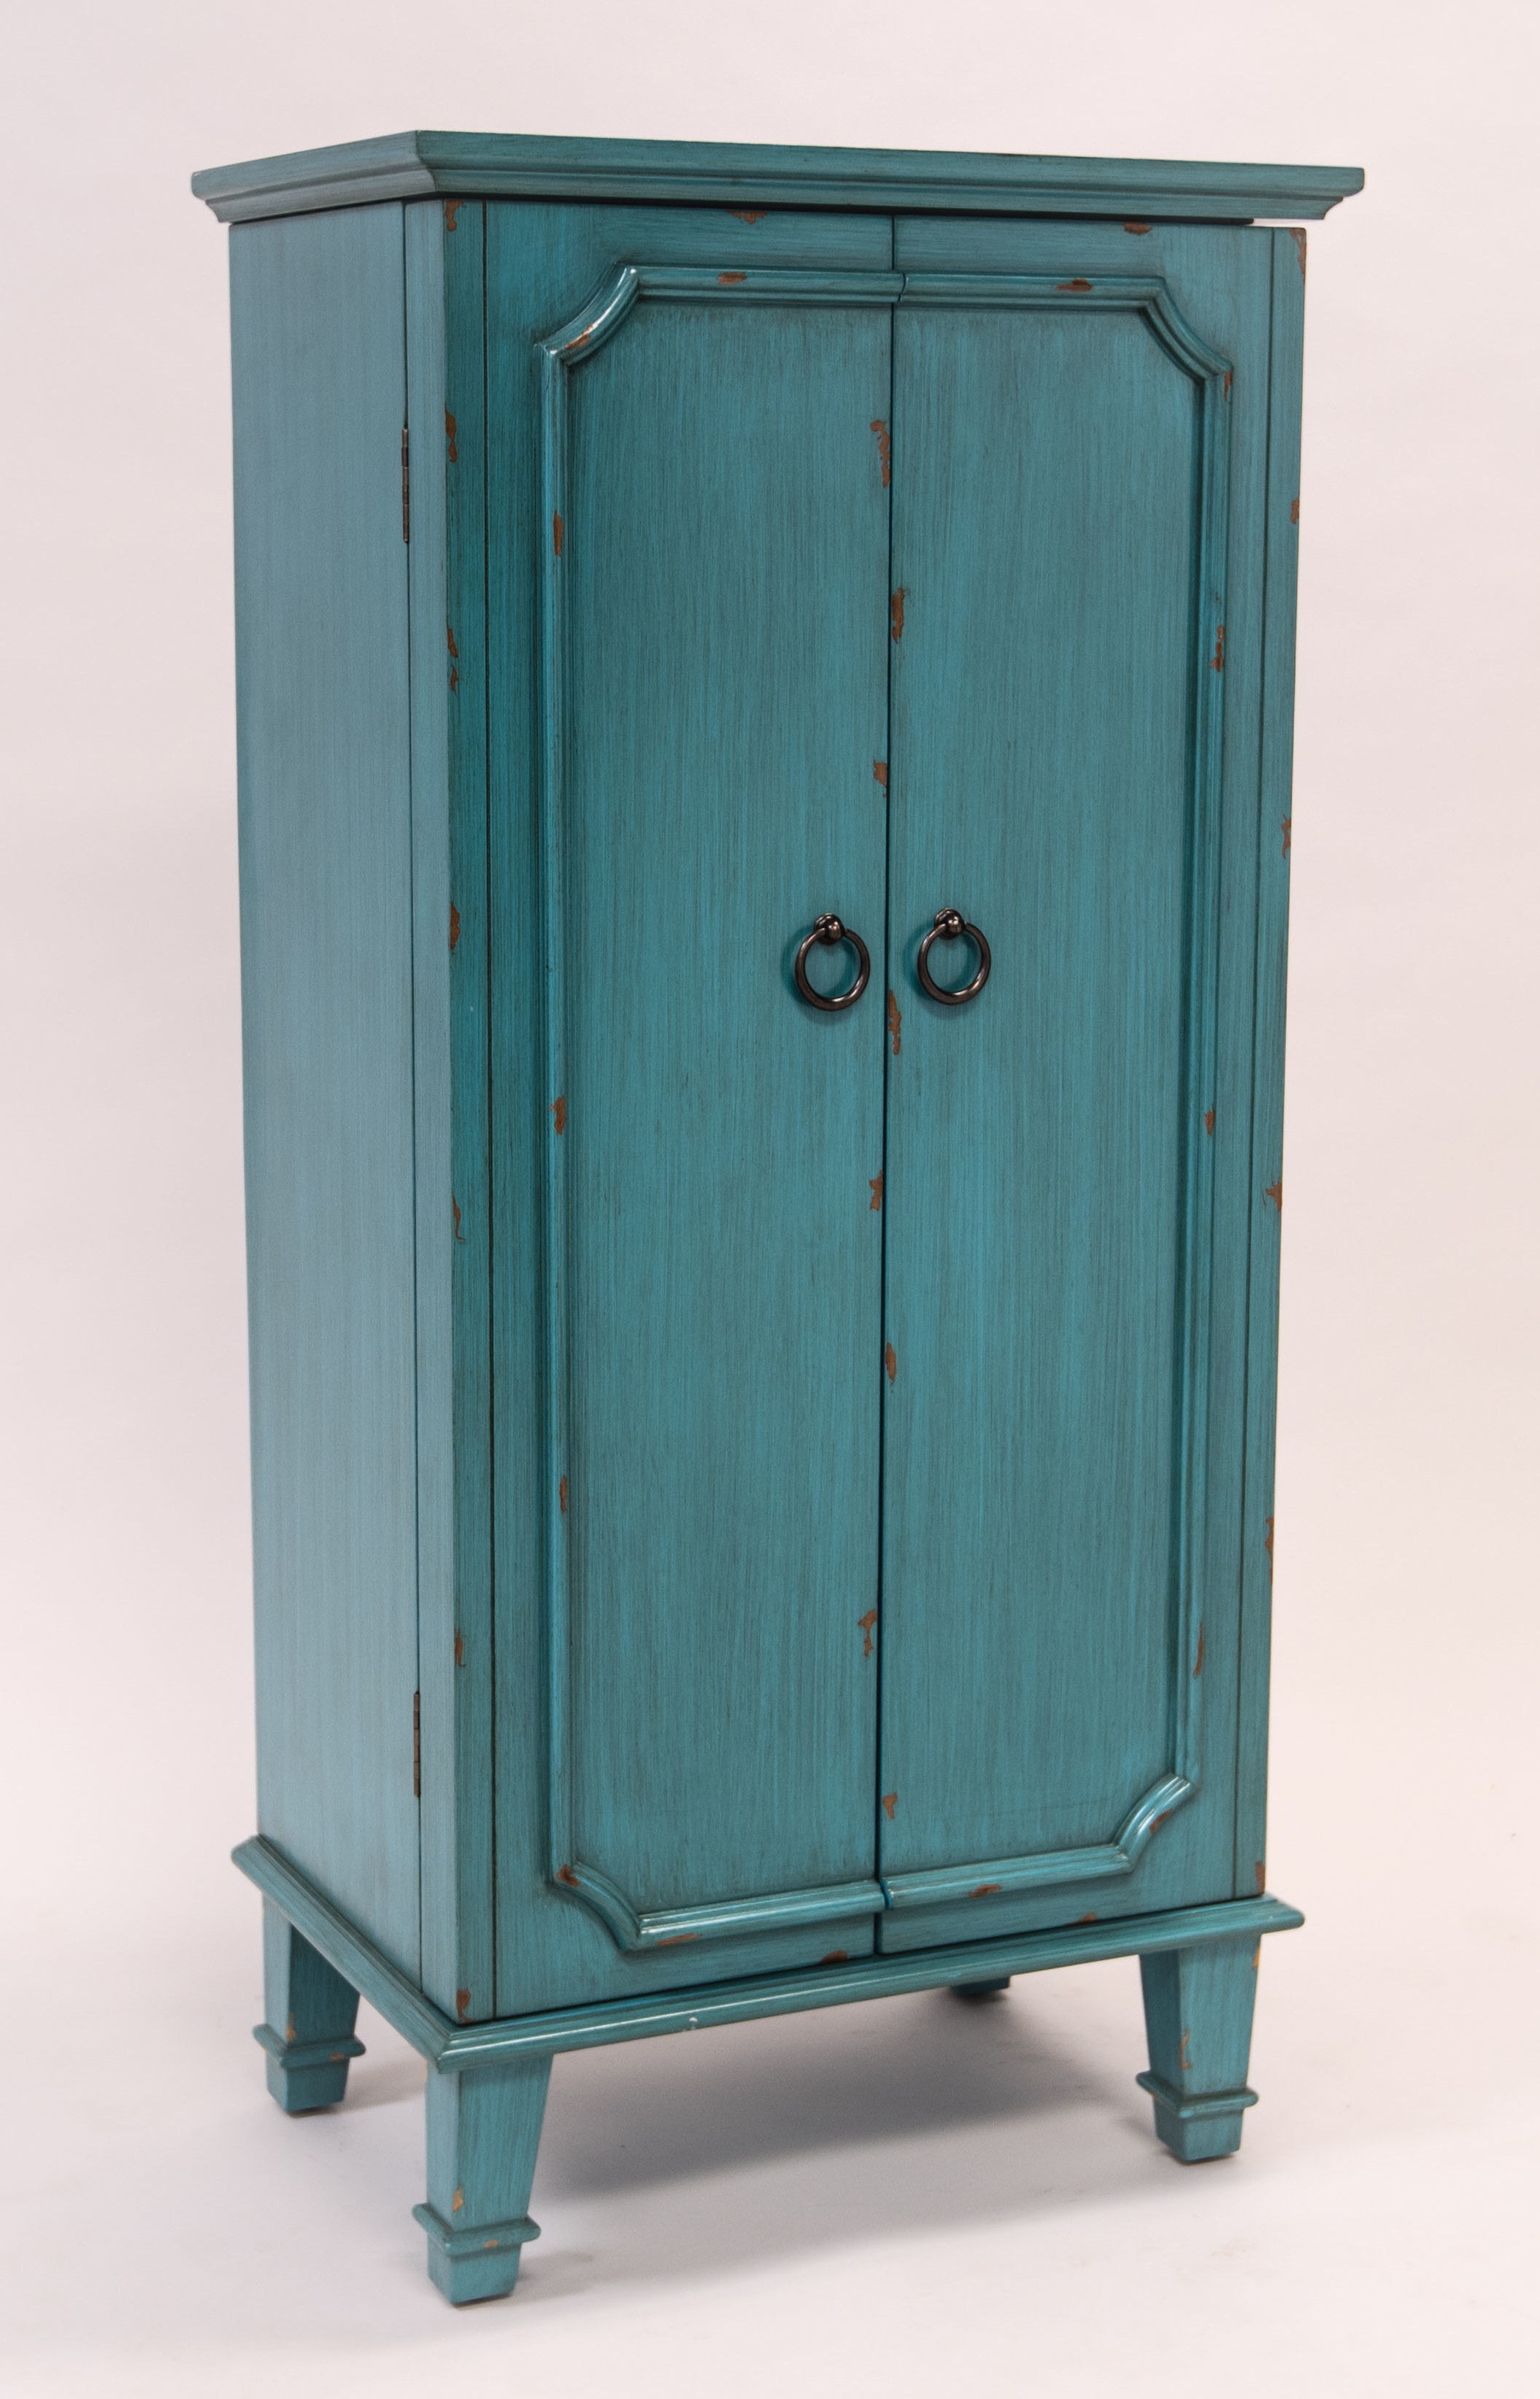 Cabby Rustic Turquoise Jewelry Armoire in addition Decorative Floral Craft Picks Sprays Wholesale 58023 likewise Cambridge Wool Braid Rugs as well 1538402174 Vit 2269978c20e63510 as well Shop. on wholesale vintage home decor